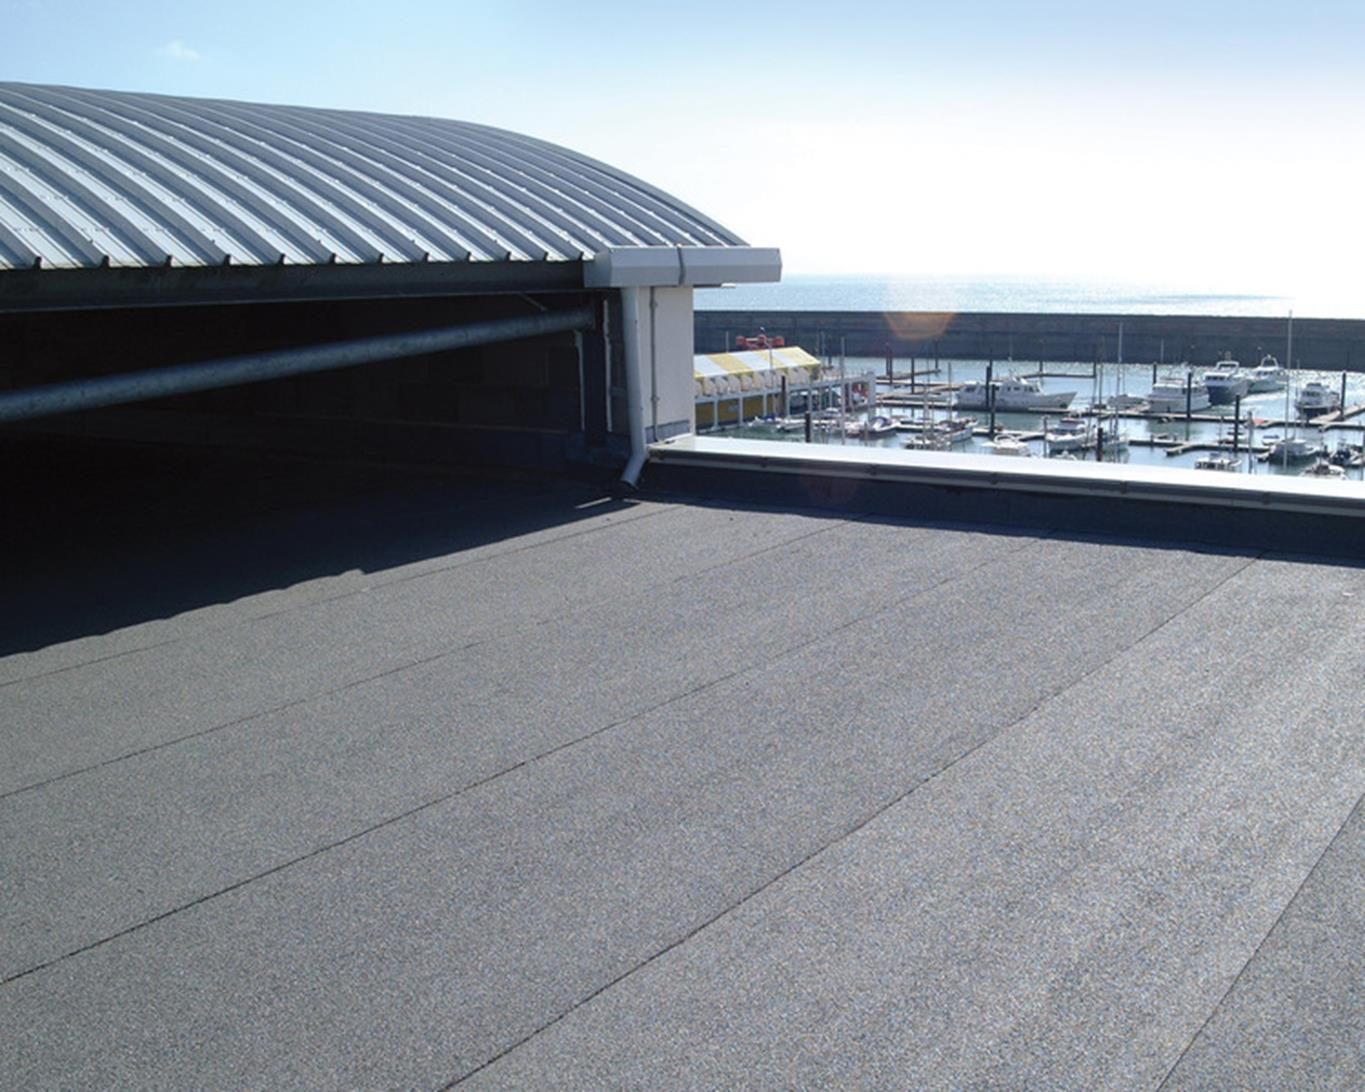 Flat roof on a sunny day